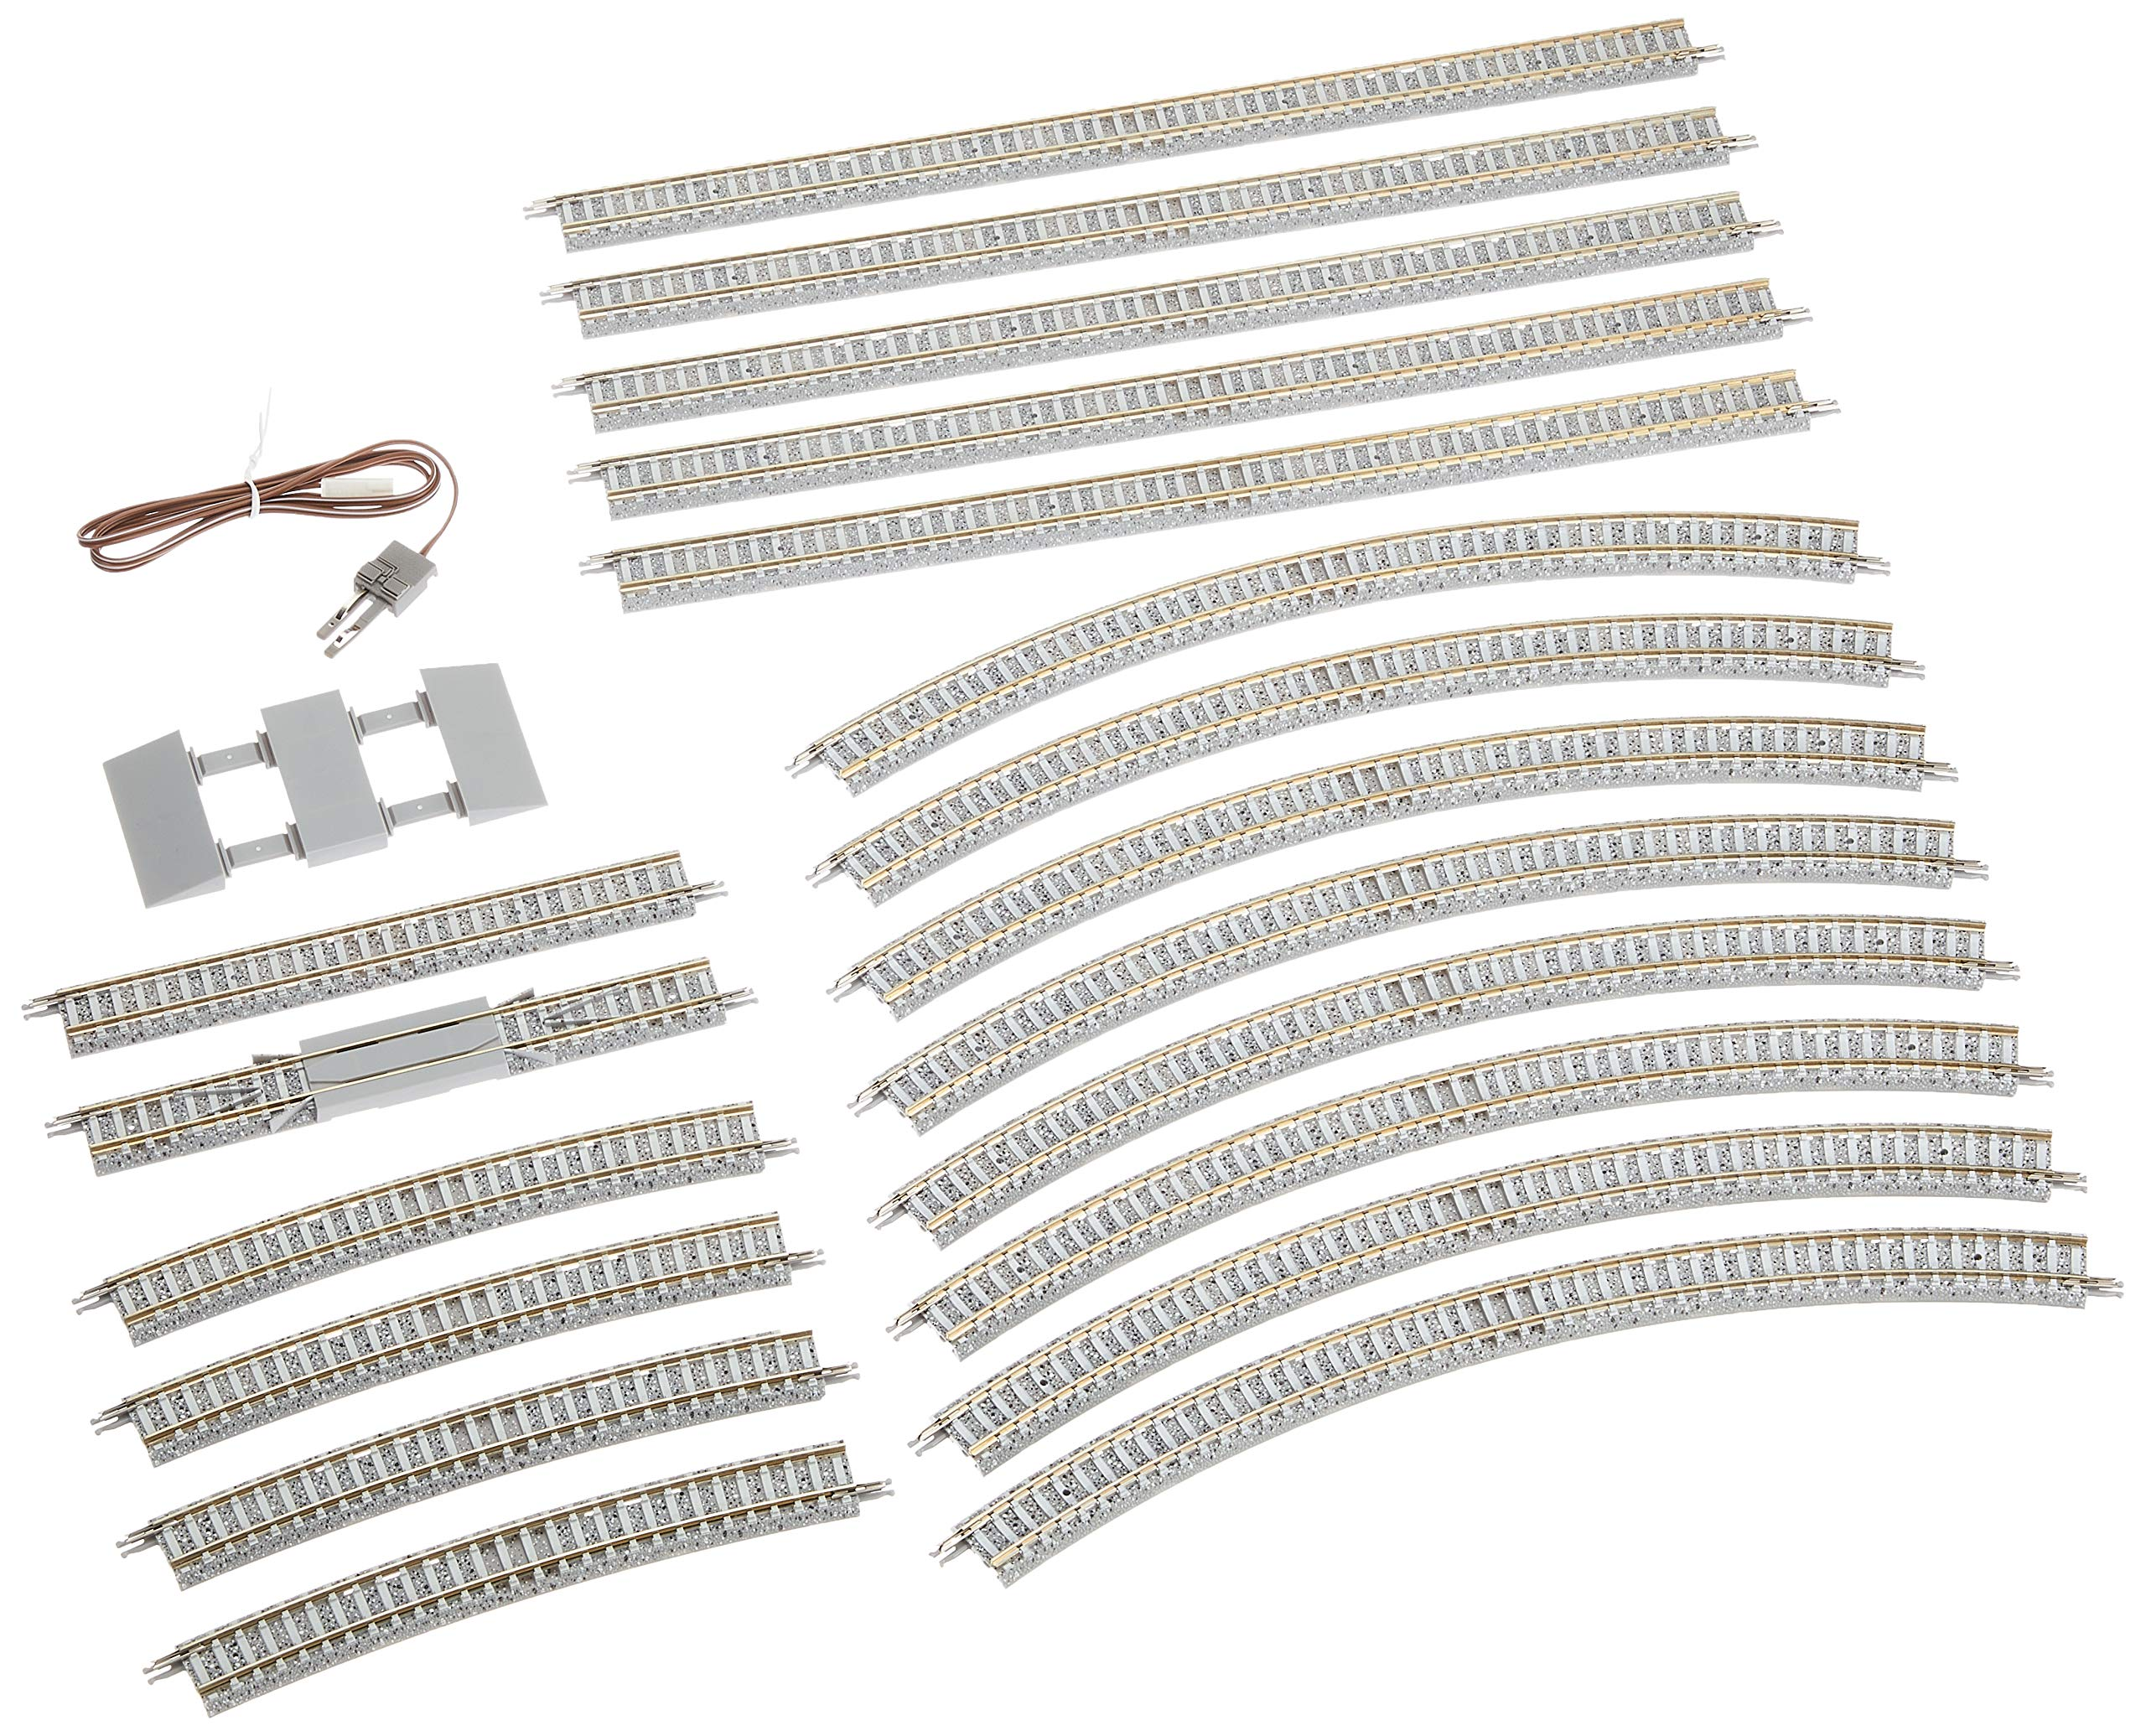 Tommy Tech 91028 N Gauge Double Track Passing Rail Set 1/150 D Pattern Japan F/s